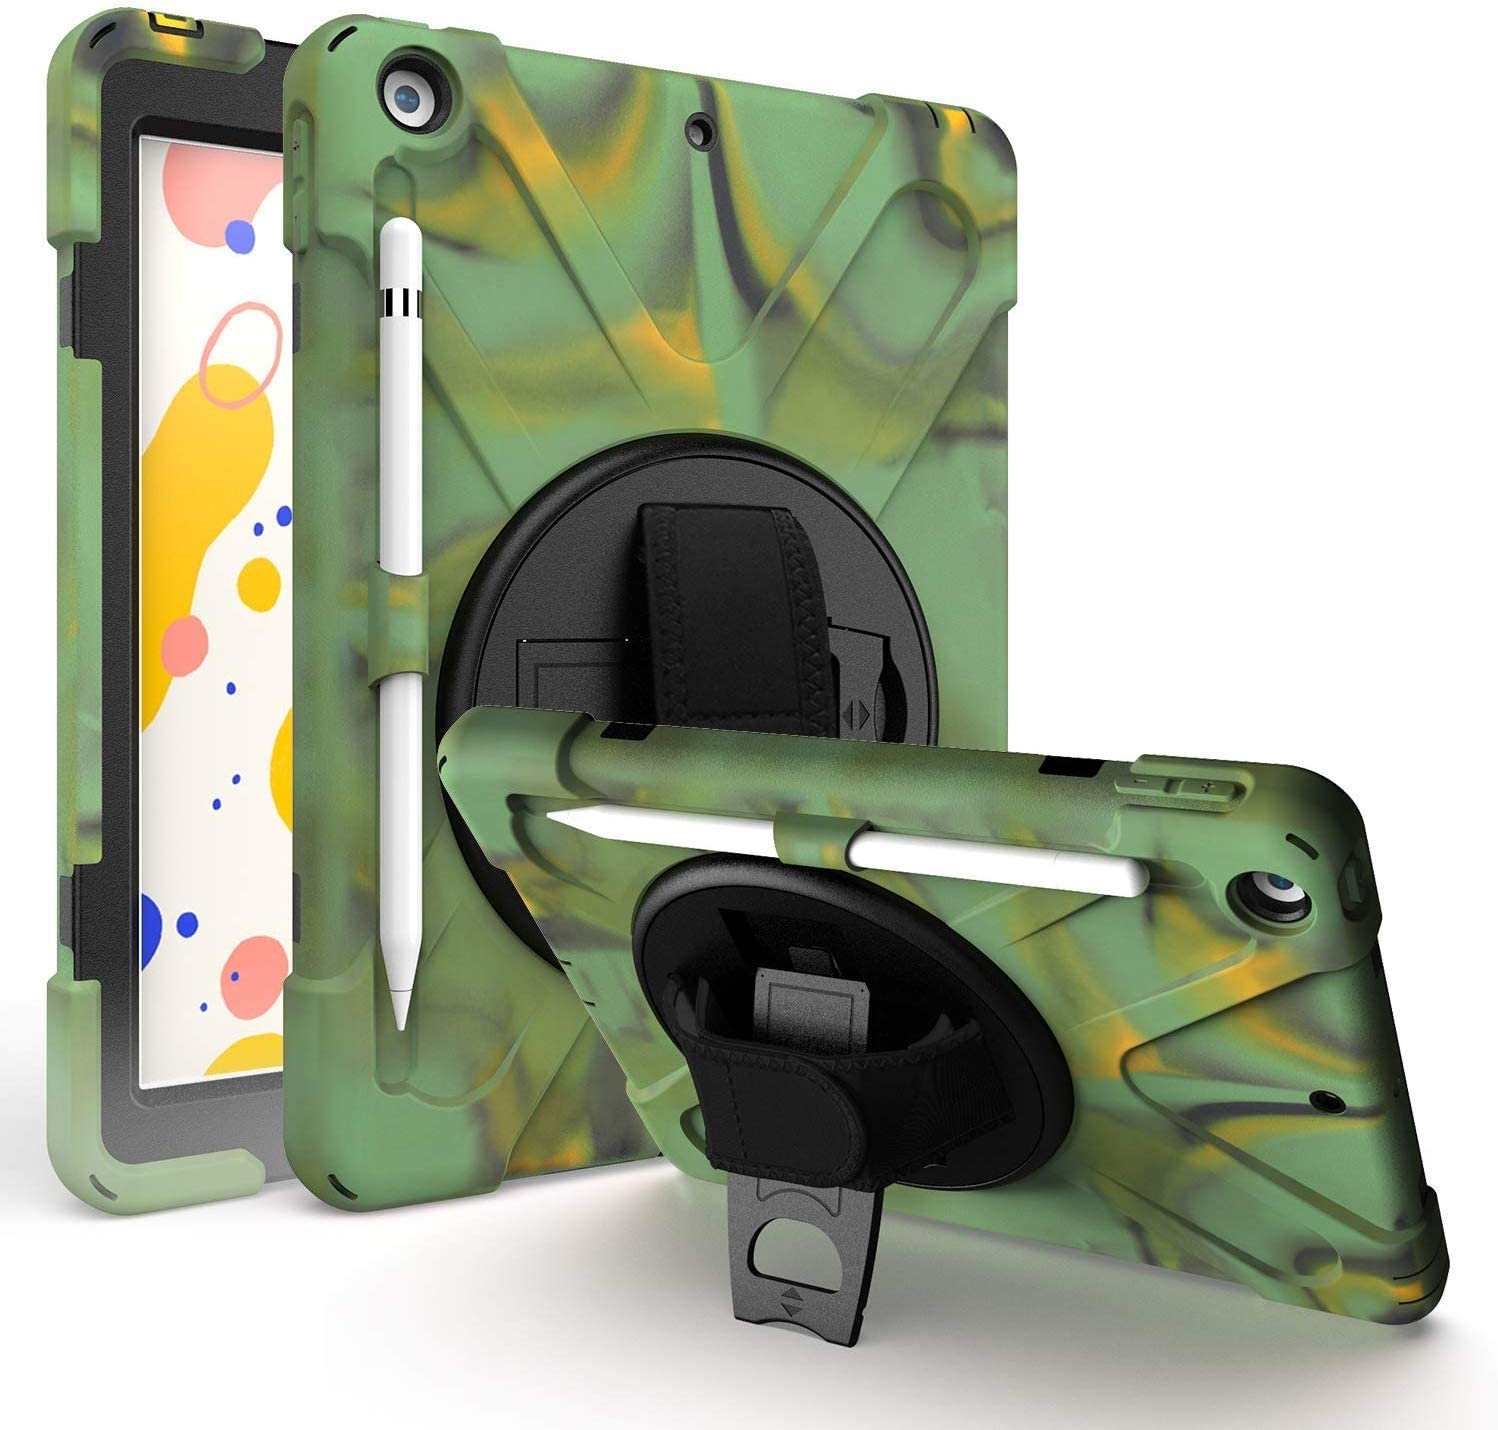 iPad 8th Gen 10.2 Case KIQ Heavy Duty Shield Case Tempered Glass Screen Protector Cover Stand Rotating Handle Palm Grip Carrying Sling Strap for Apple iPad 10.2 2019/2020 7th 8th [Camouflage]